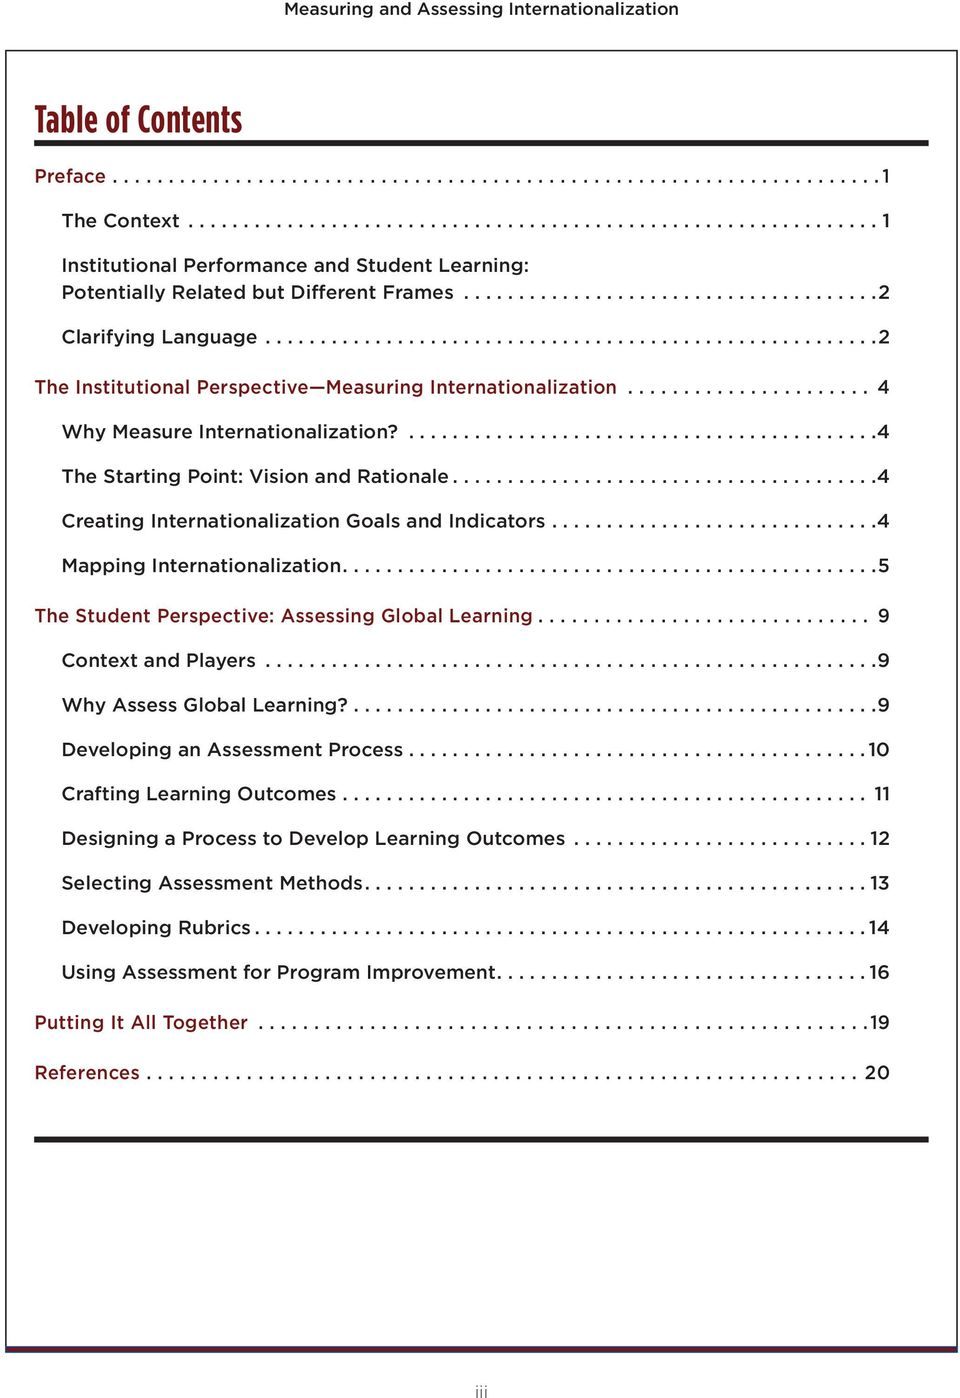 ..4 Creating Internationalization Goals and Indicators...4 Mapping Internationalization...5 The Student Perspective: Assessing Global Learning... 9 Context and Players...9 Why Assess Global Learning?